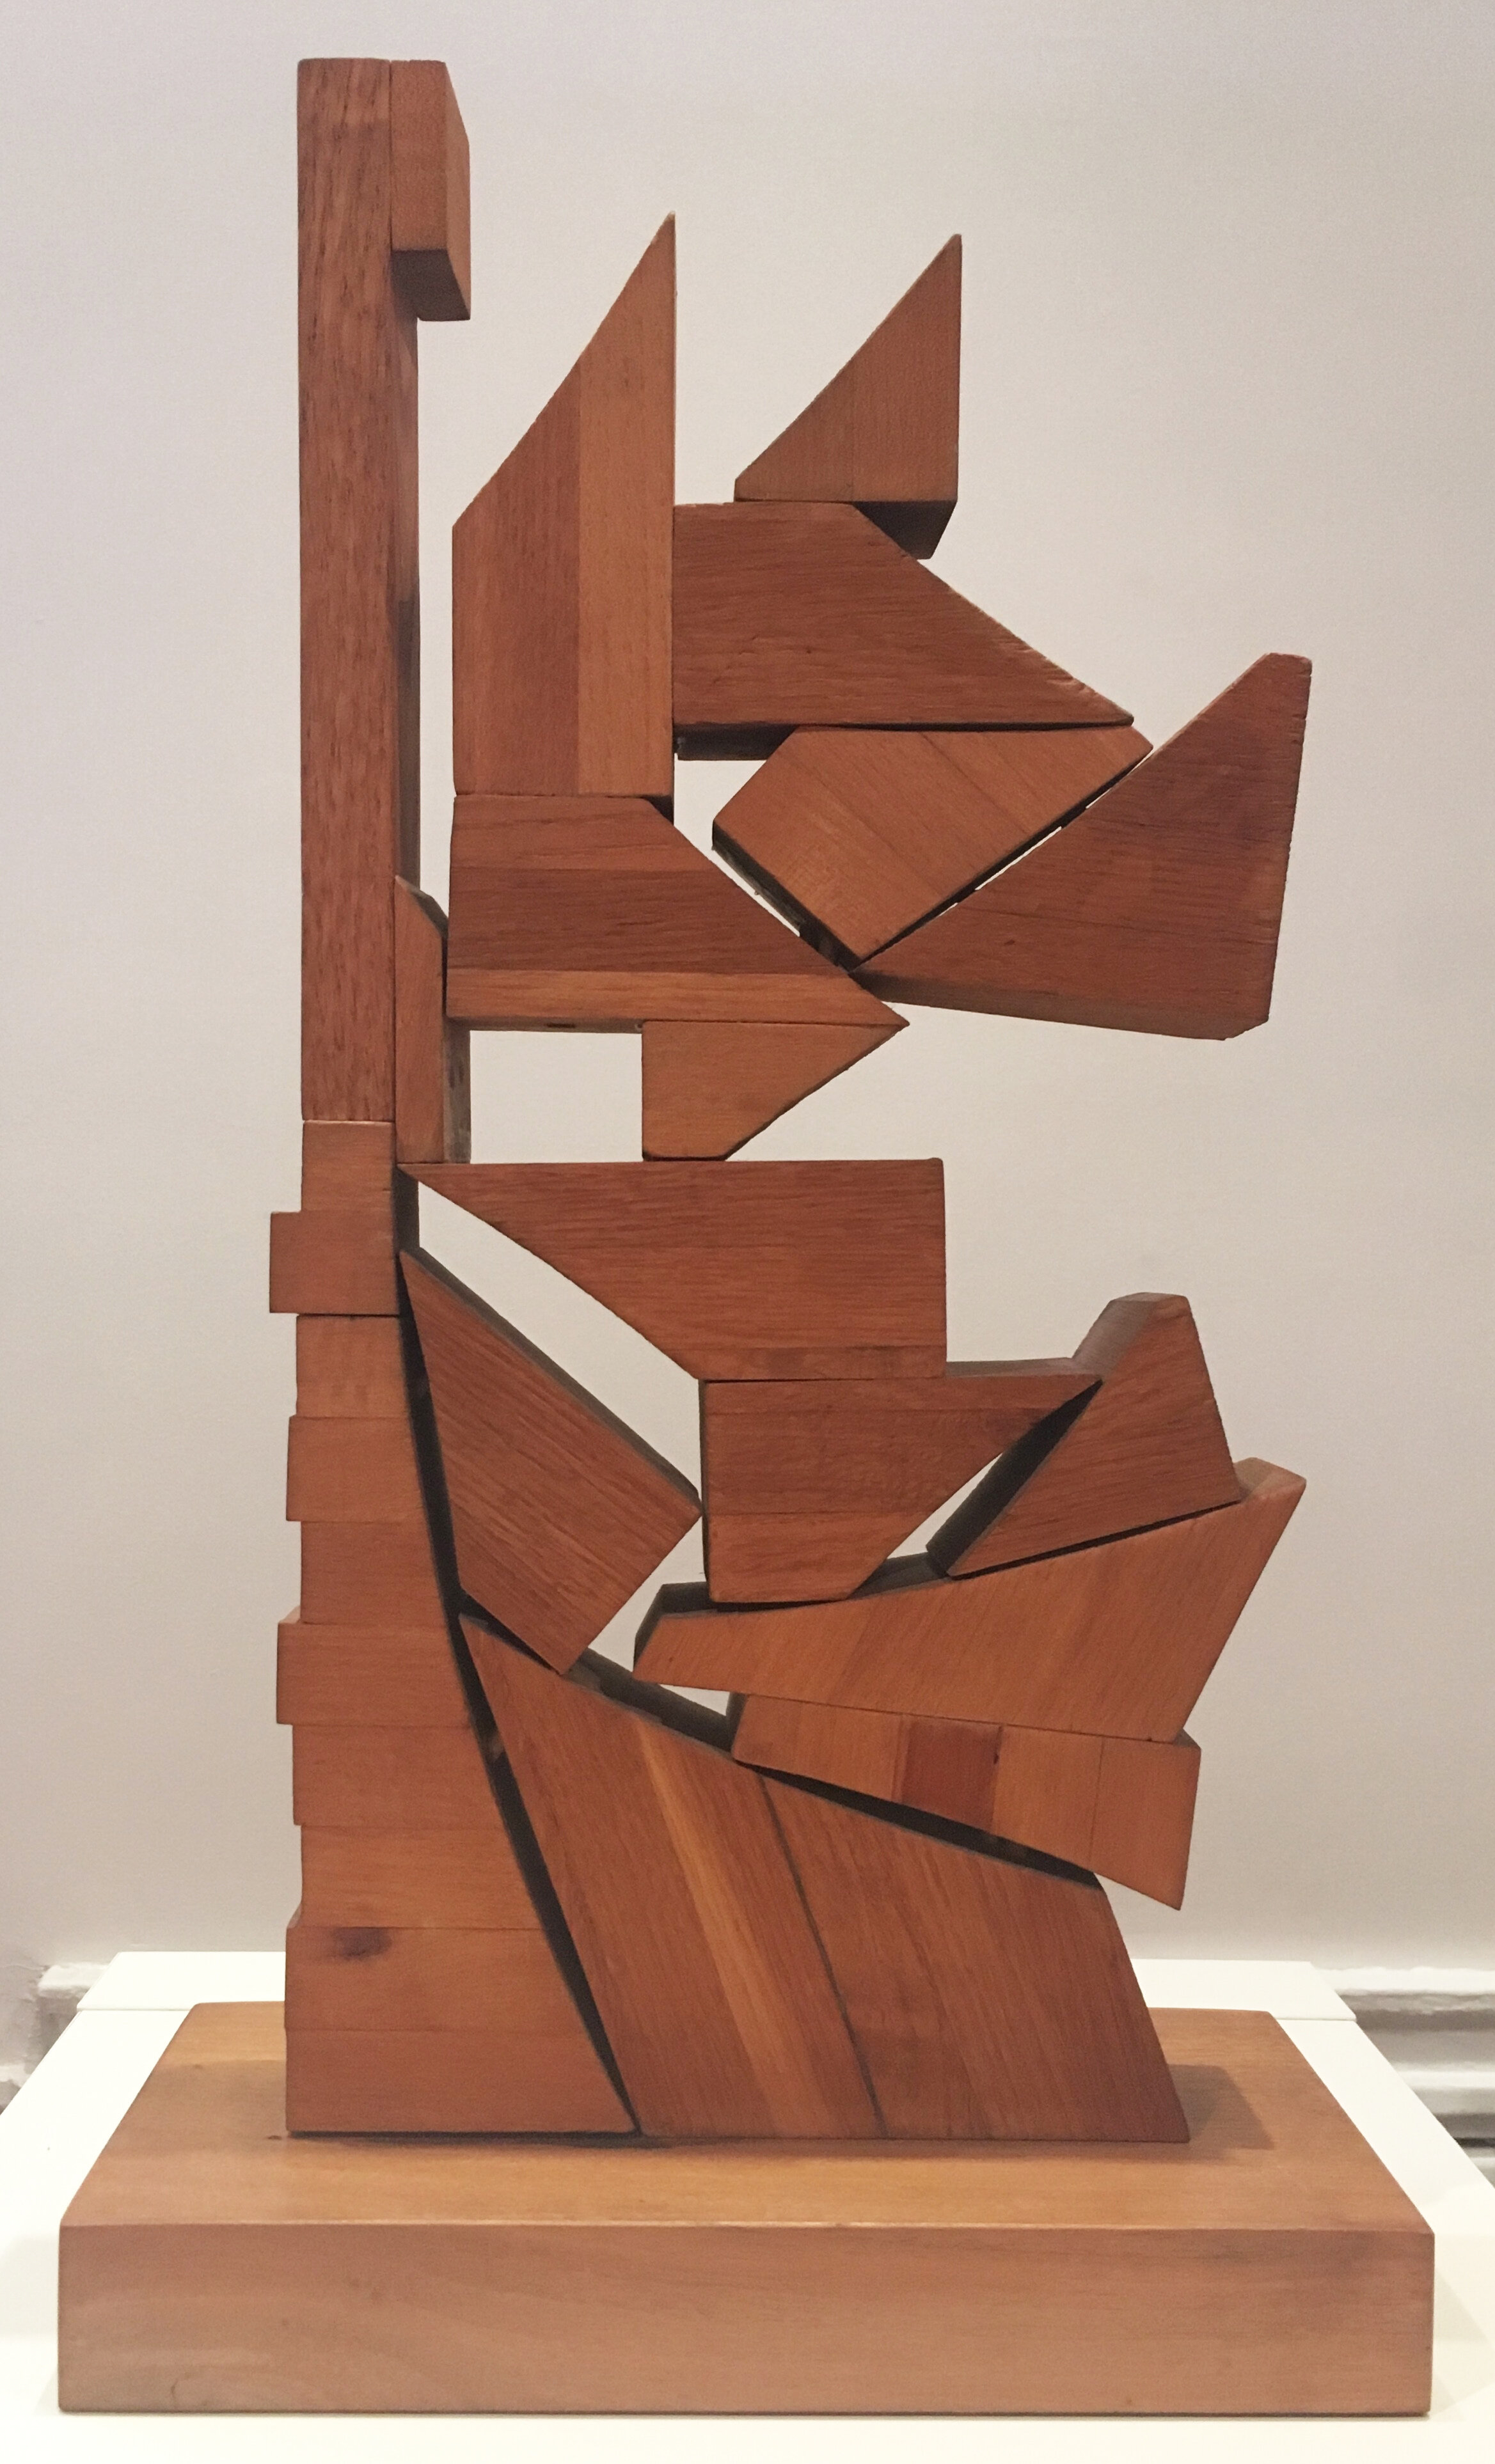 Abstract sculpture with geometric forms in wood